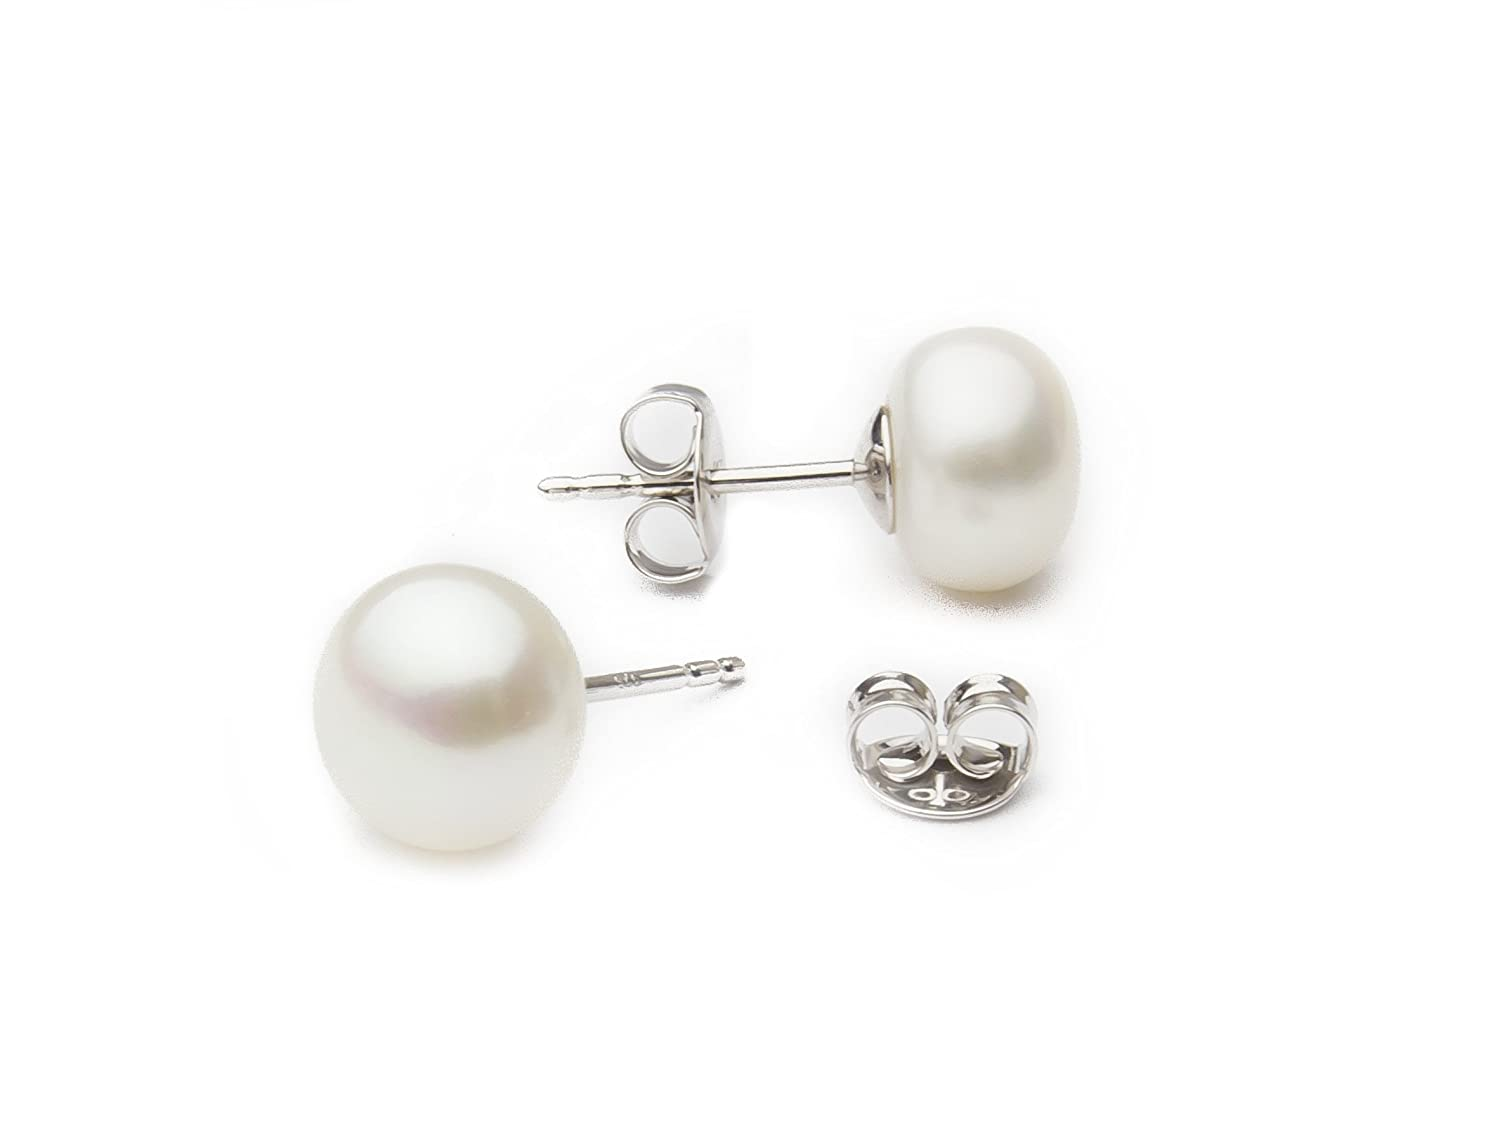 white bright round supermall earrings stud silver pearl light freshwater slight plug kartely near ear